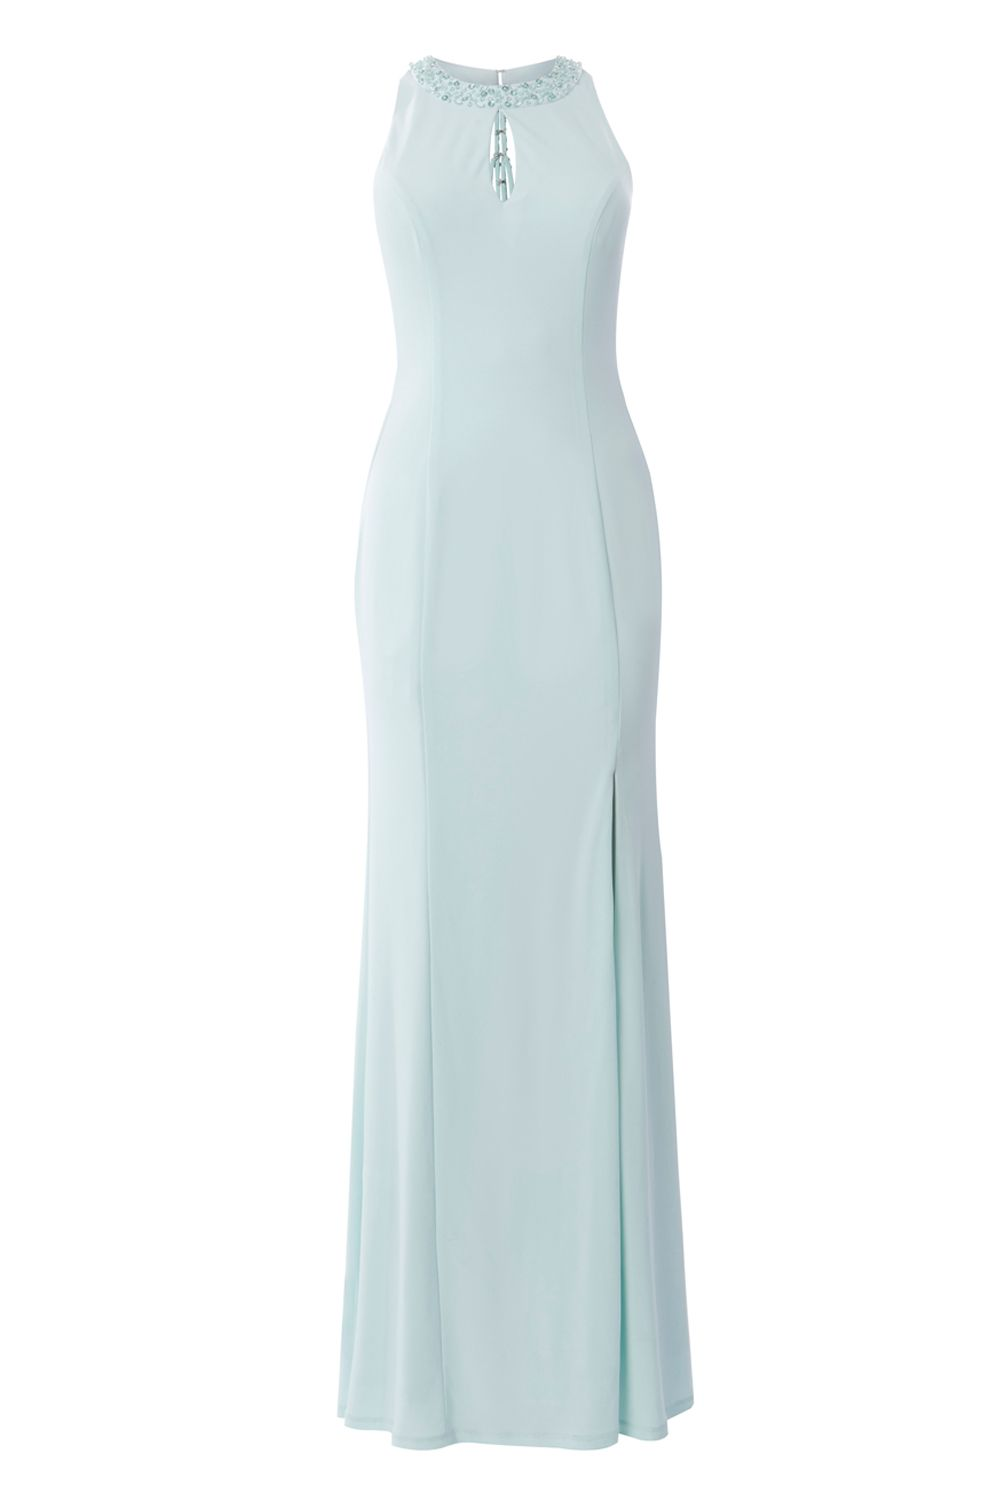 Coast Avril Backless Prom Dress, Mint